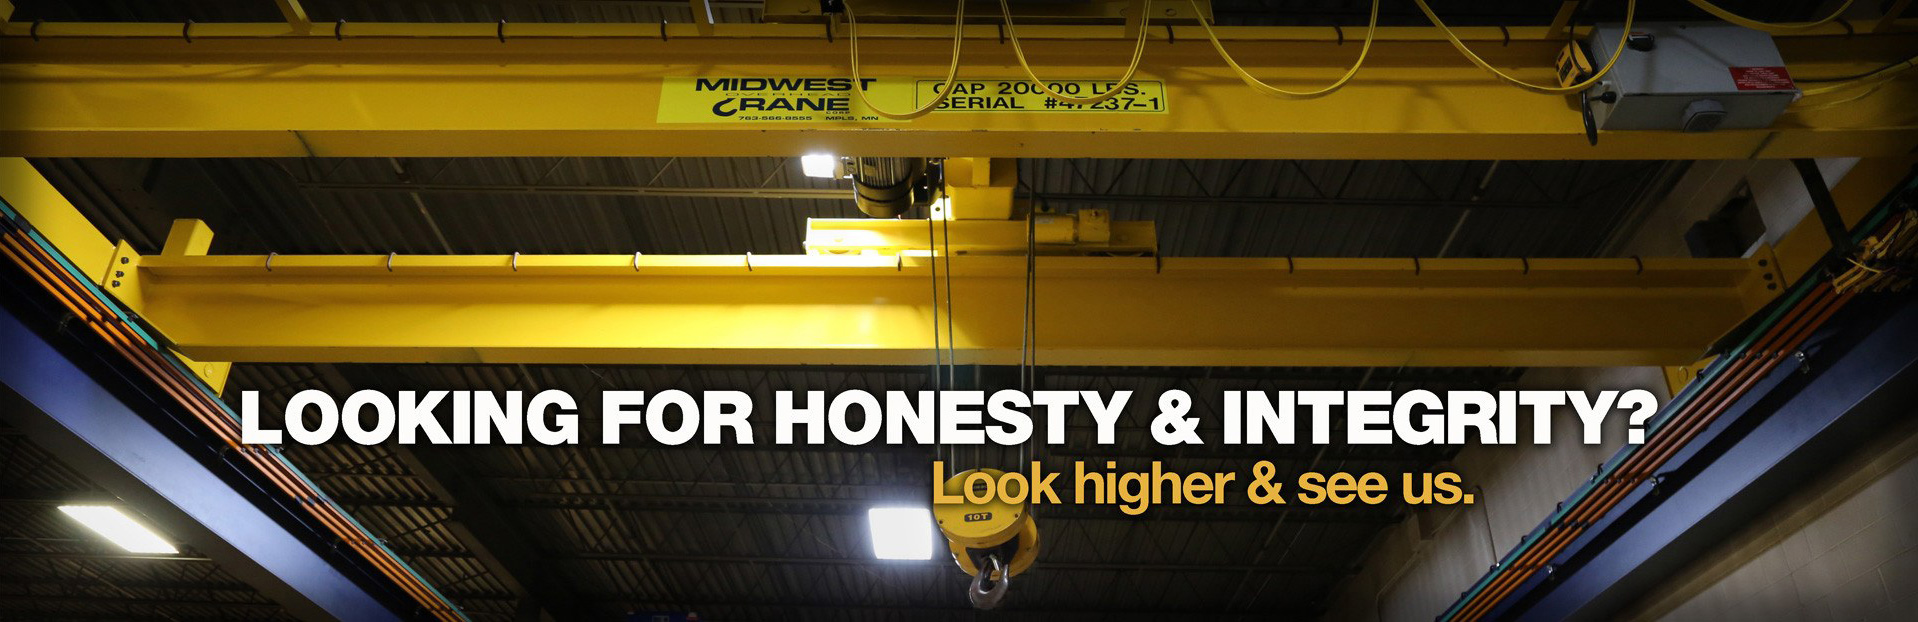 Looking for honesty & integrity? Look higher & see us.